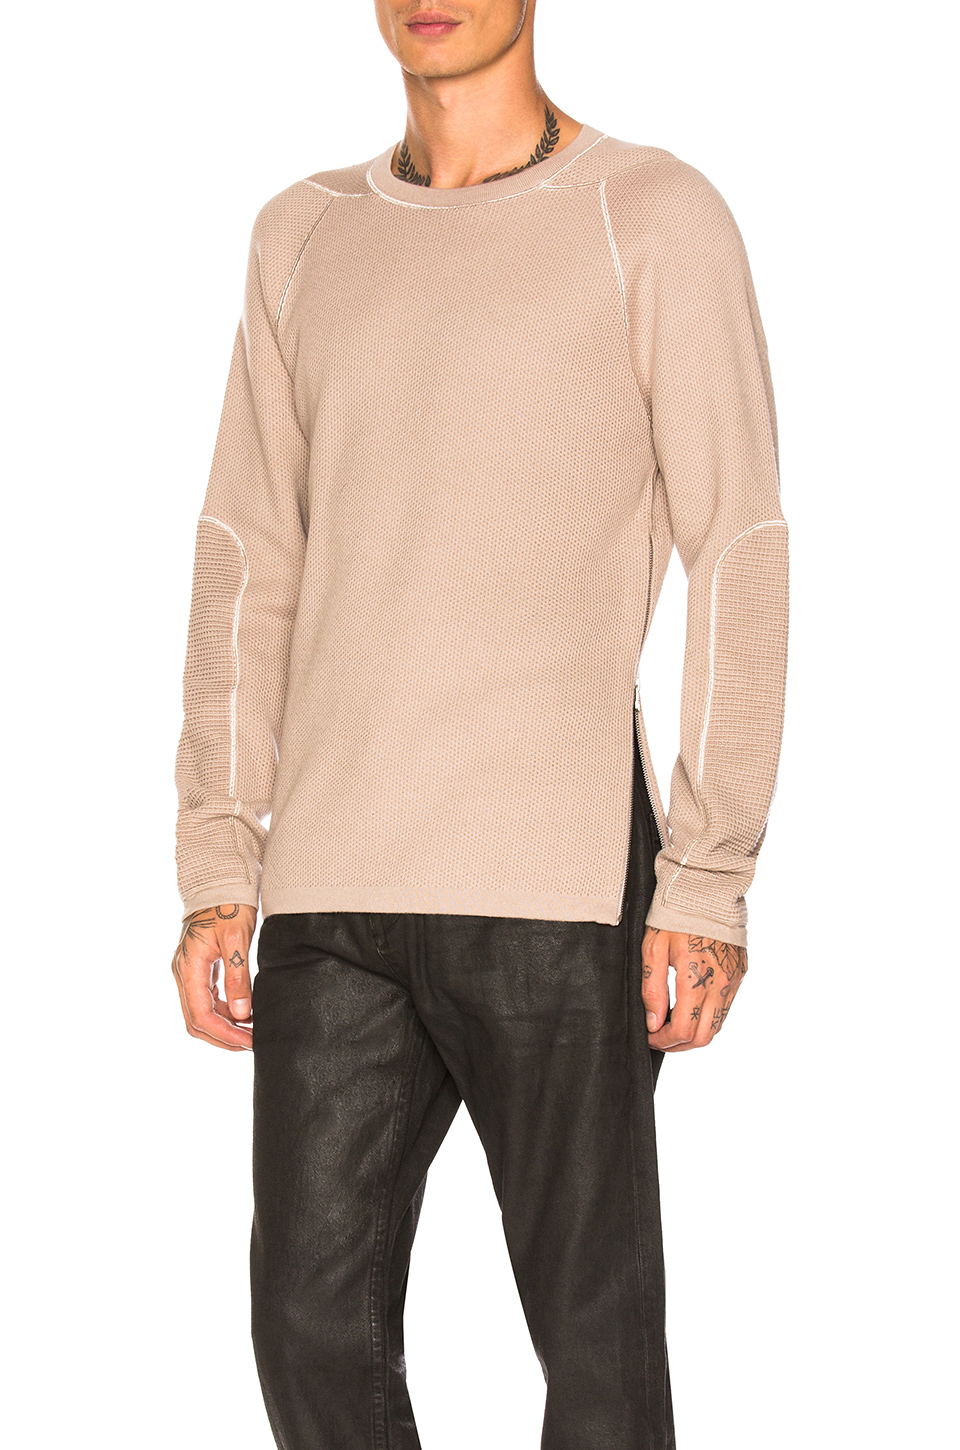 Helmut Lang Combo Crewneck Luxe in Agate